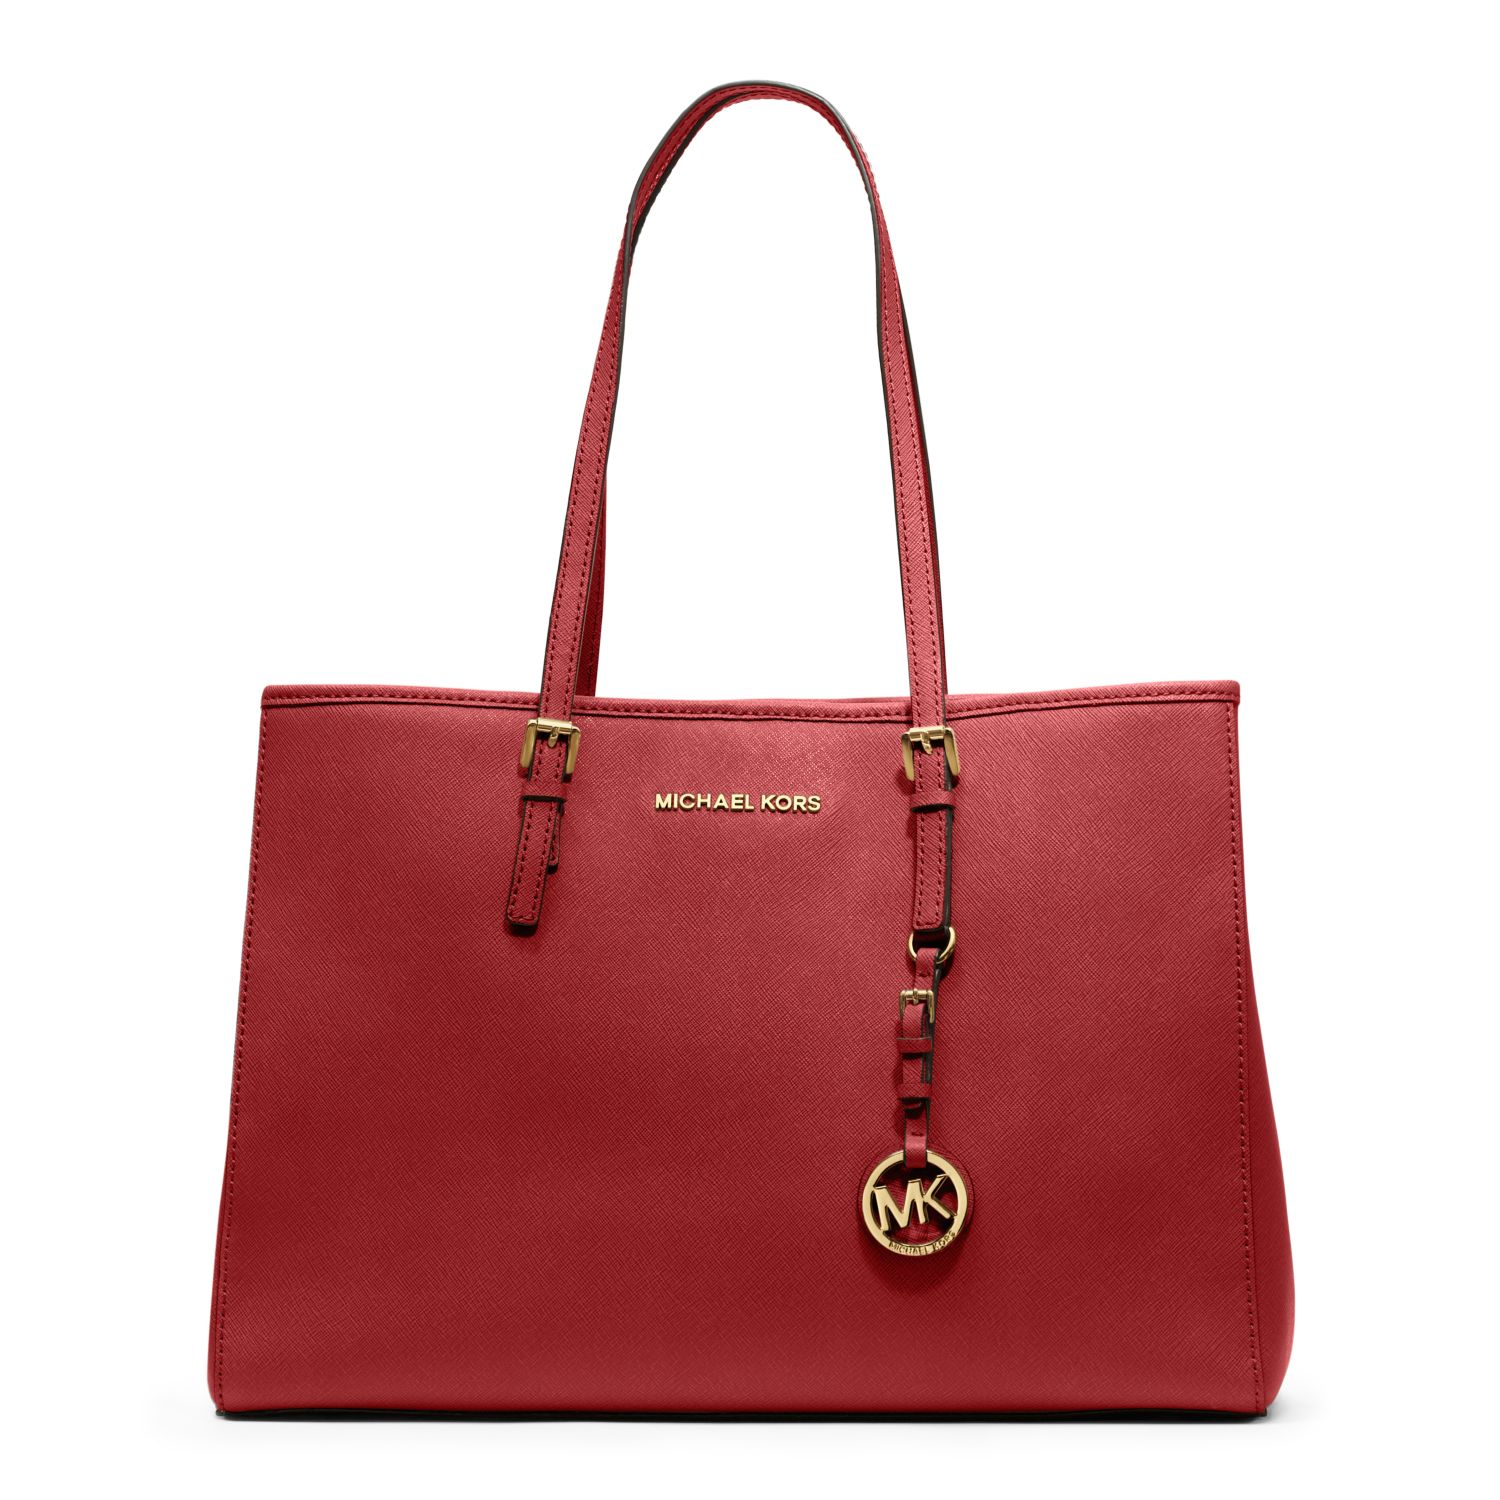 michael kors jet set travel saffiano leather tote in red. Black Bedroom Furniture Sets. Home Design Ideas